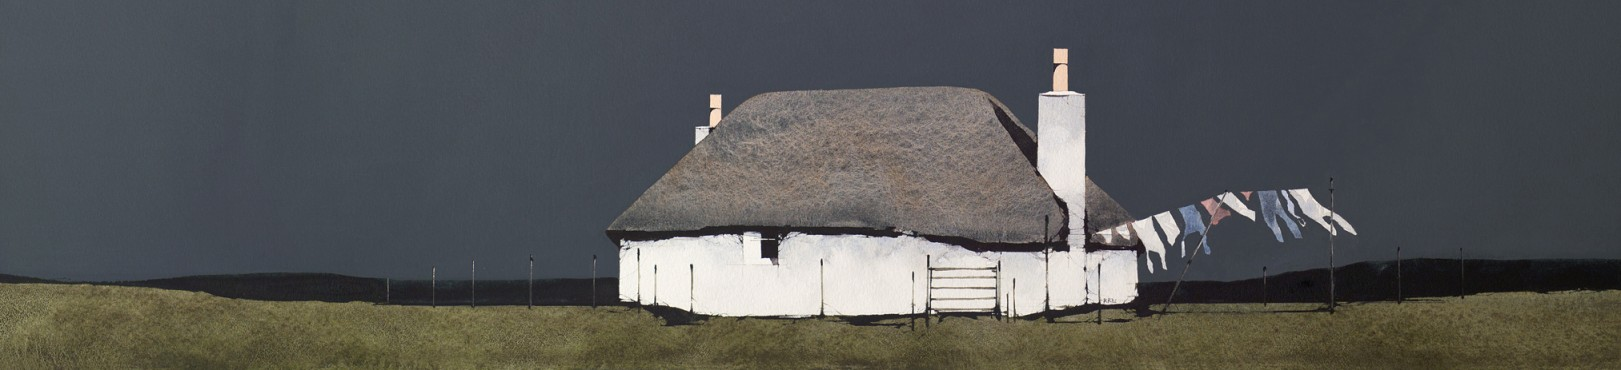 Ron Lawson_RL14_Drying Day, North Uist_Image Size 150x634mm